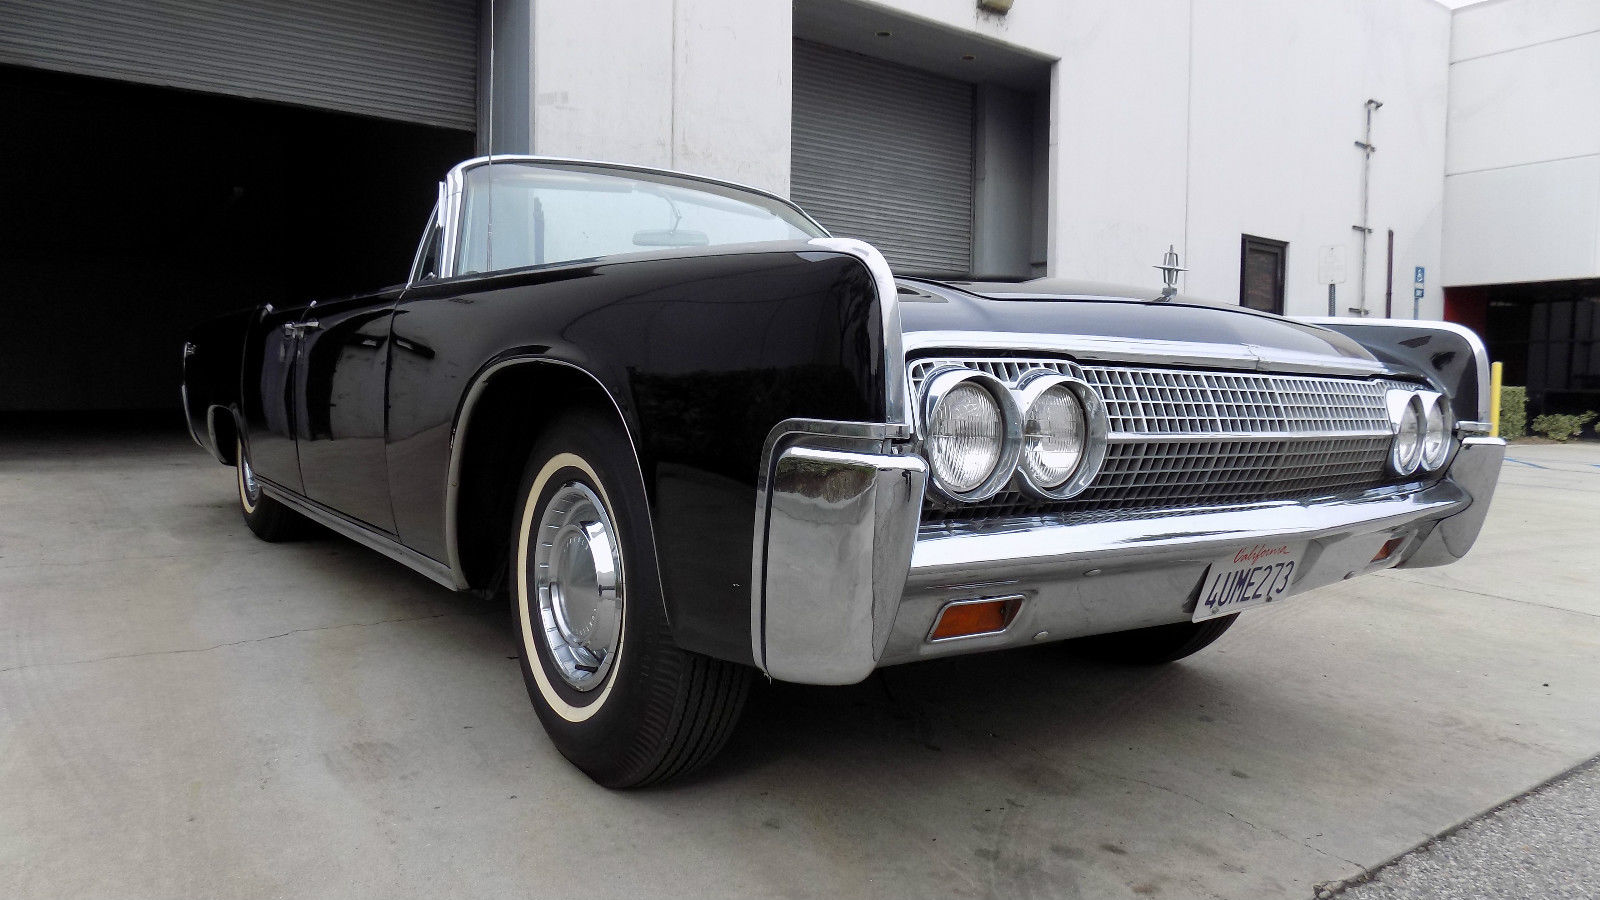 1963 lincoln continental convertible all original black on black classic lincoln continental. Black Bedroom Furniture Sets. Home Design Ideas